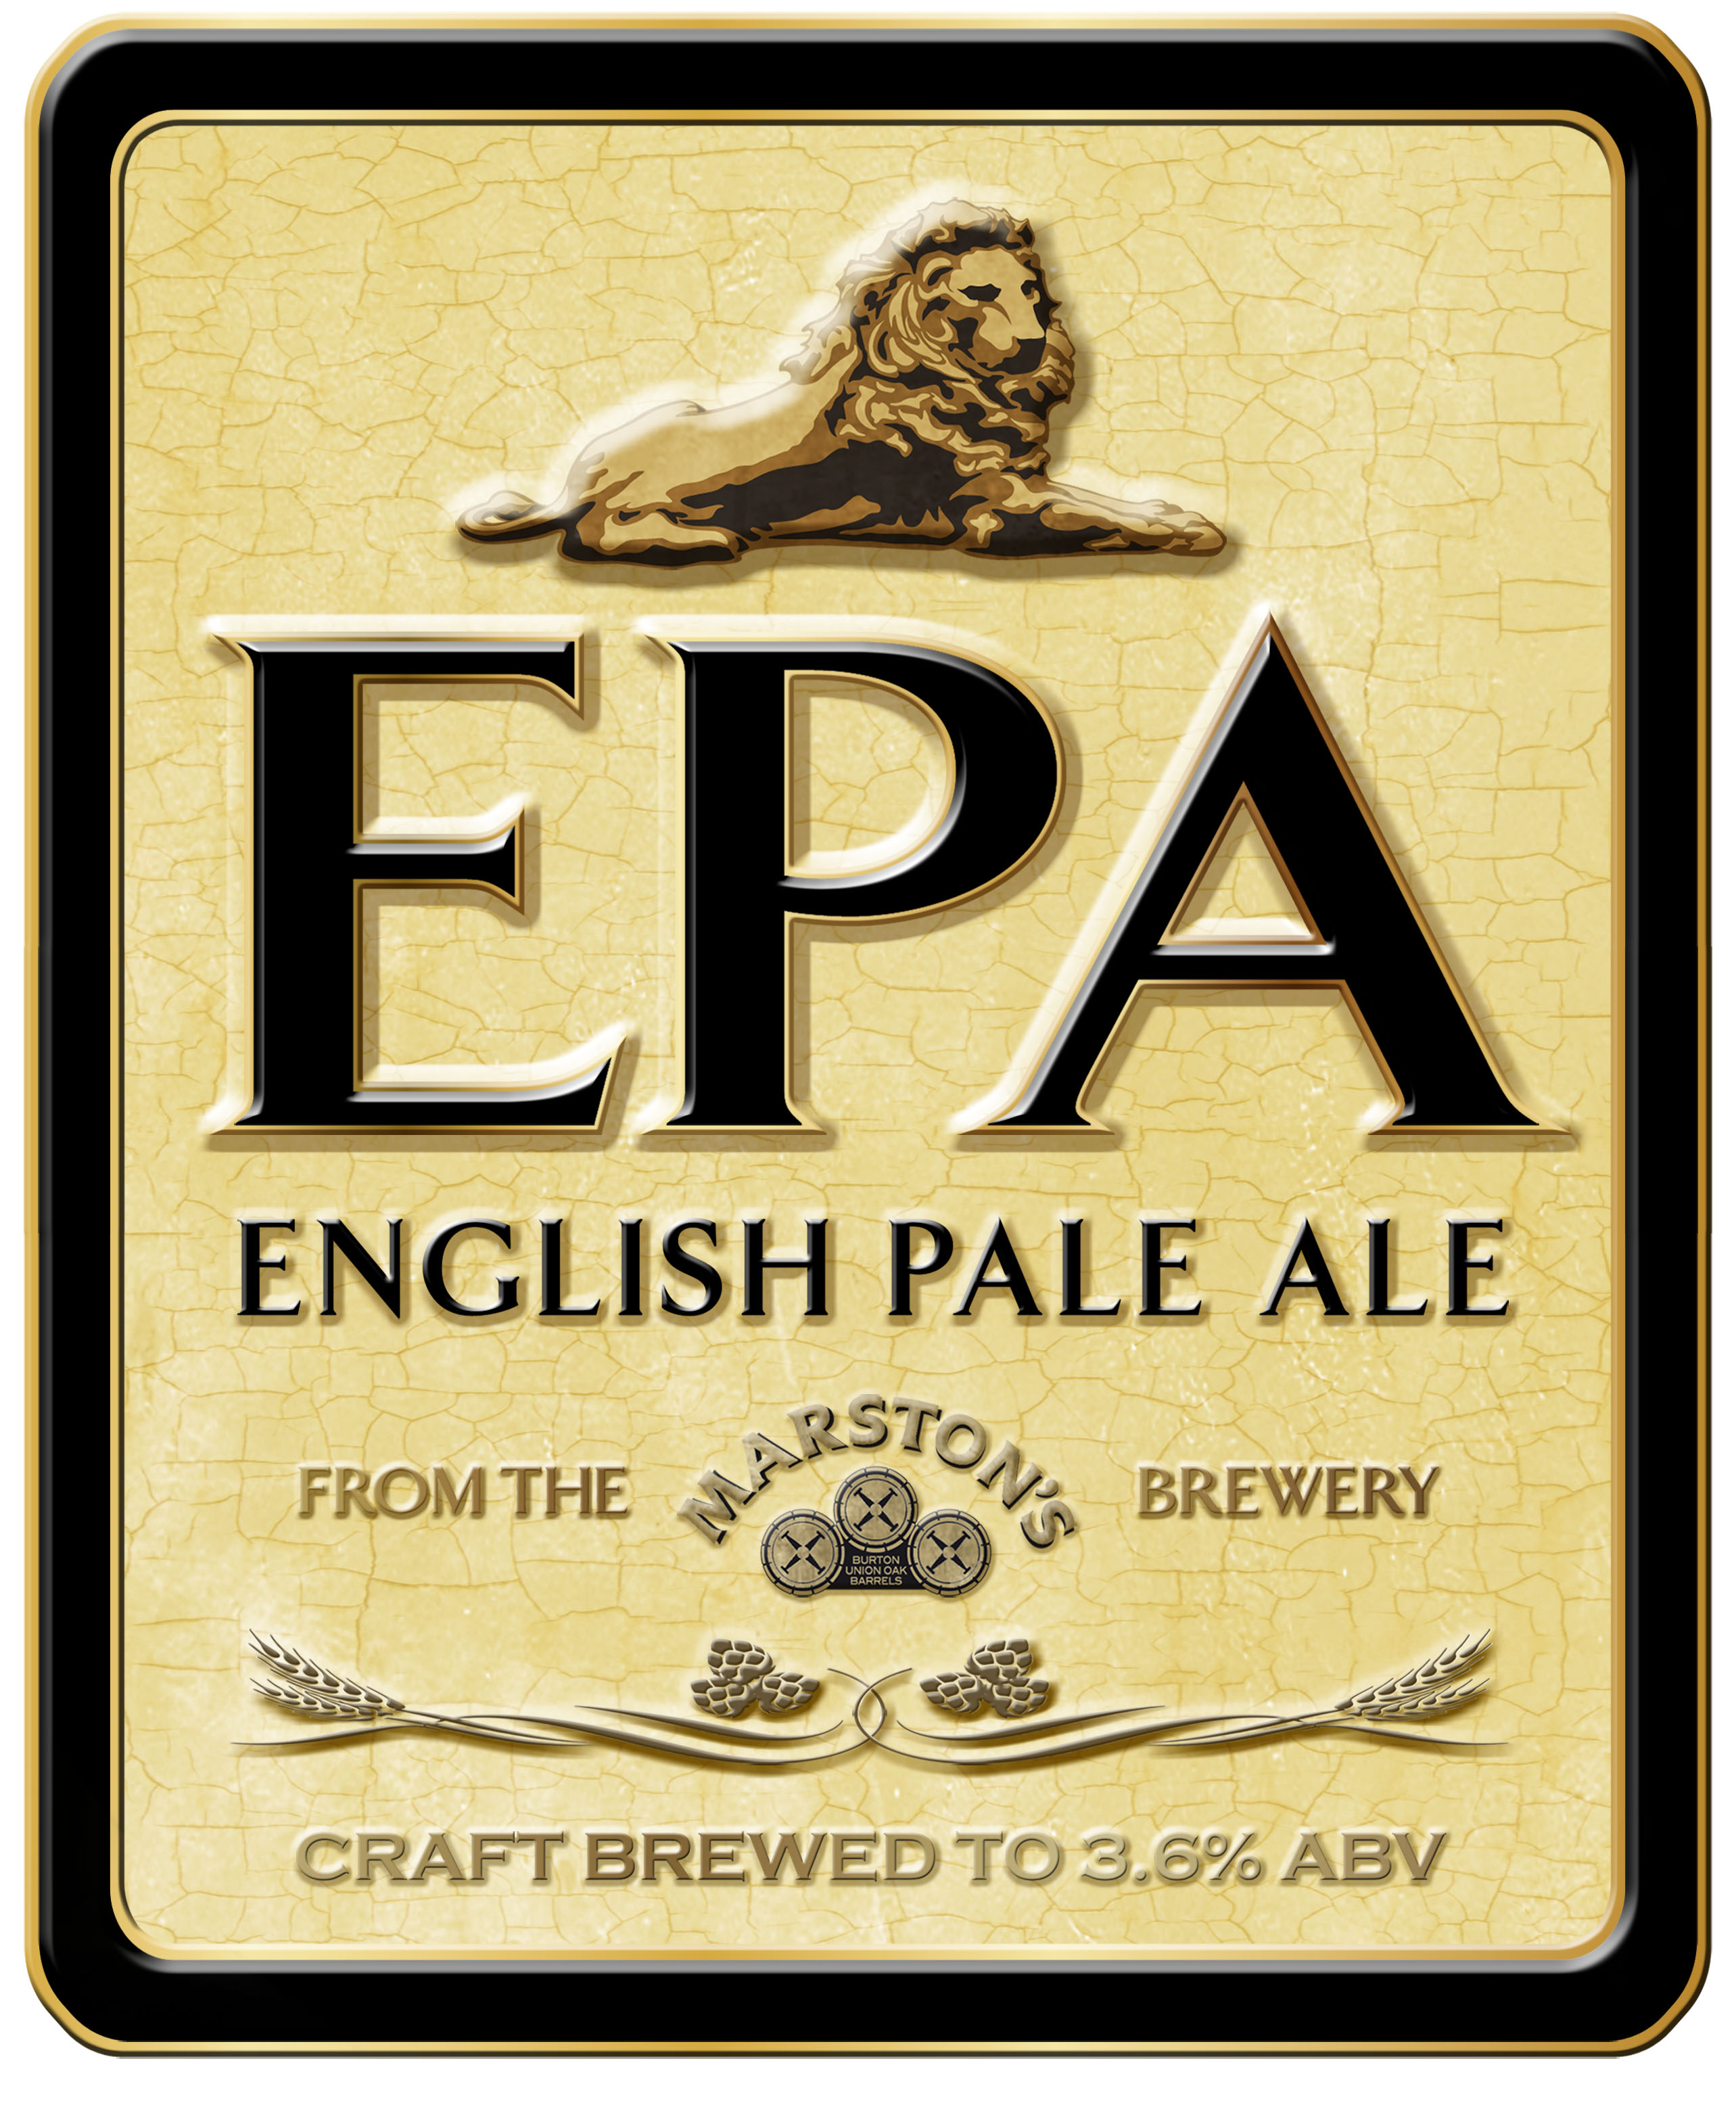 EPA - English Pale Ale